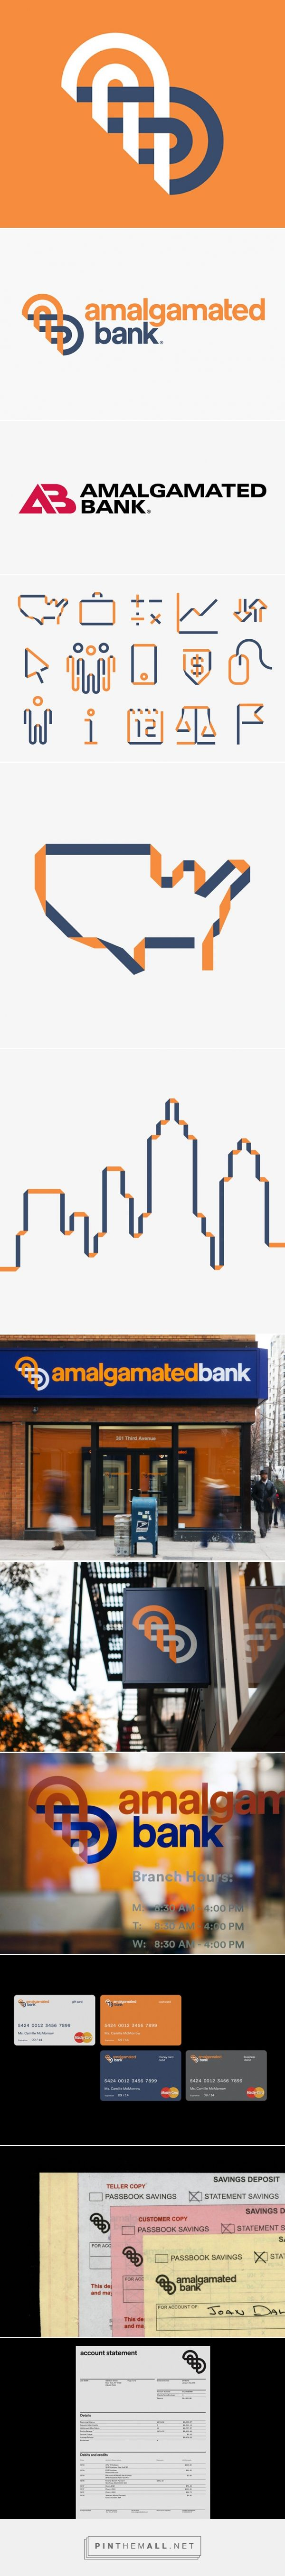 pentagram rebrands the amalgamated bank... - a grouped images picture - Pin Them All